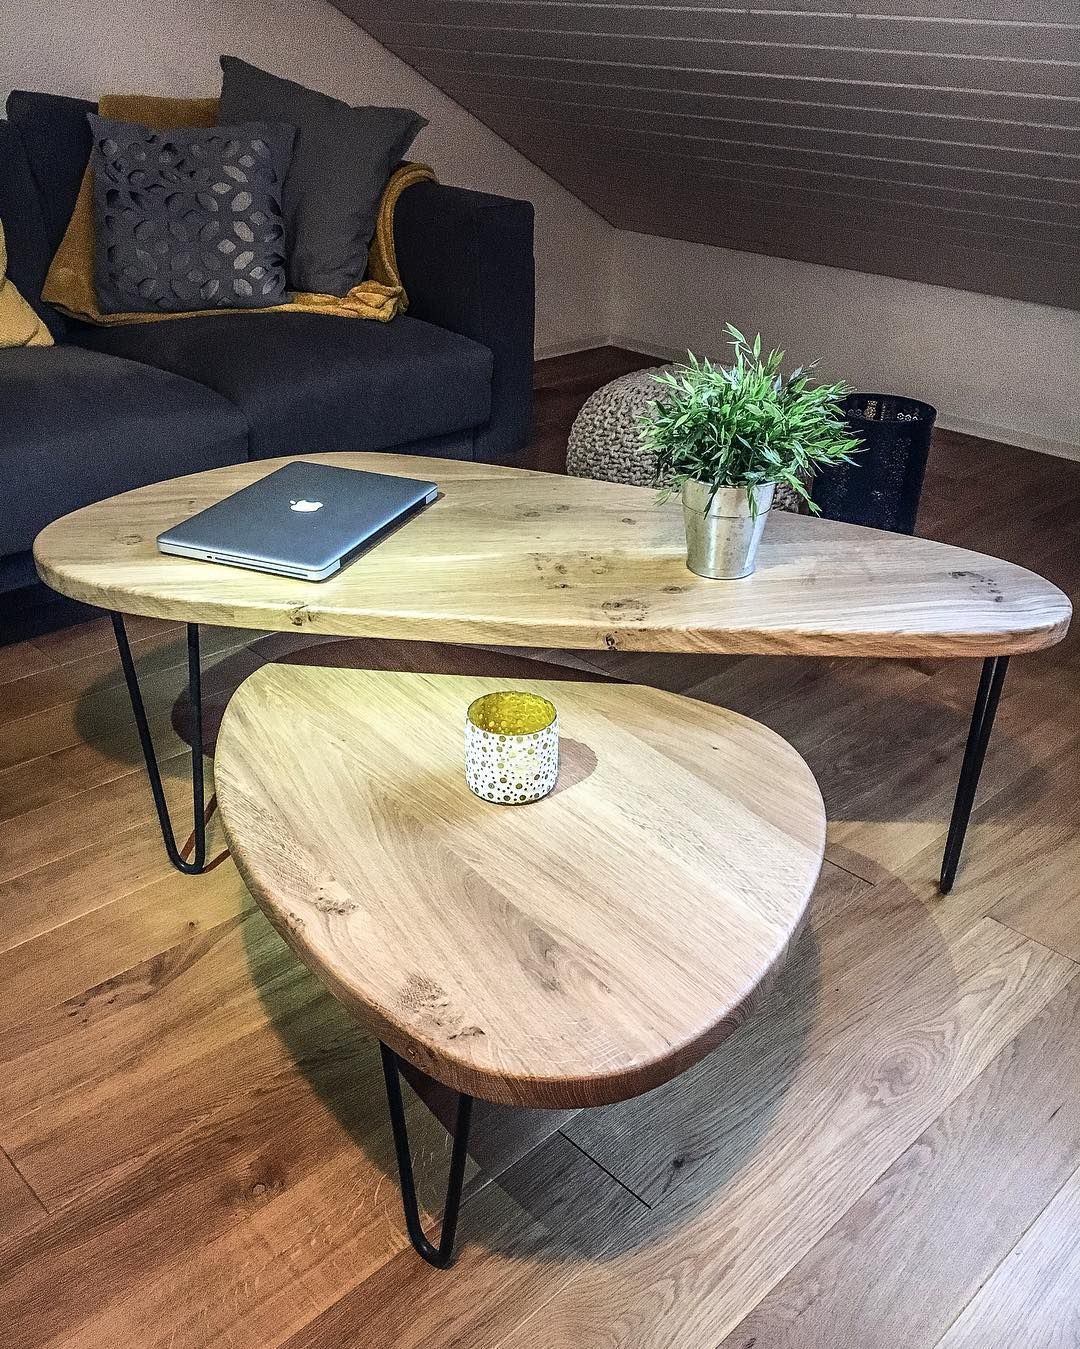 Petites Tables Basses 348 Mentions J Aime 16 Commentaires Ripaton Hairpin Legs